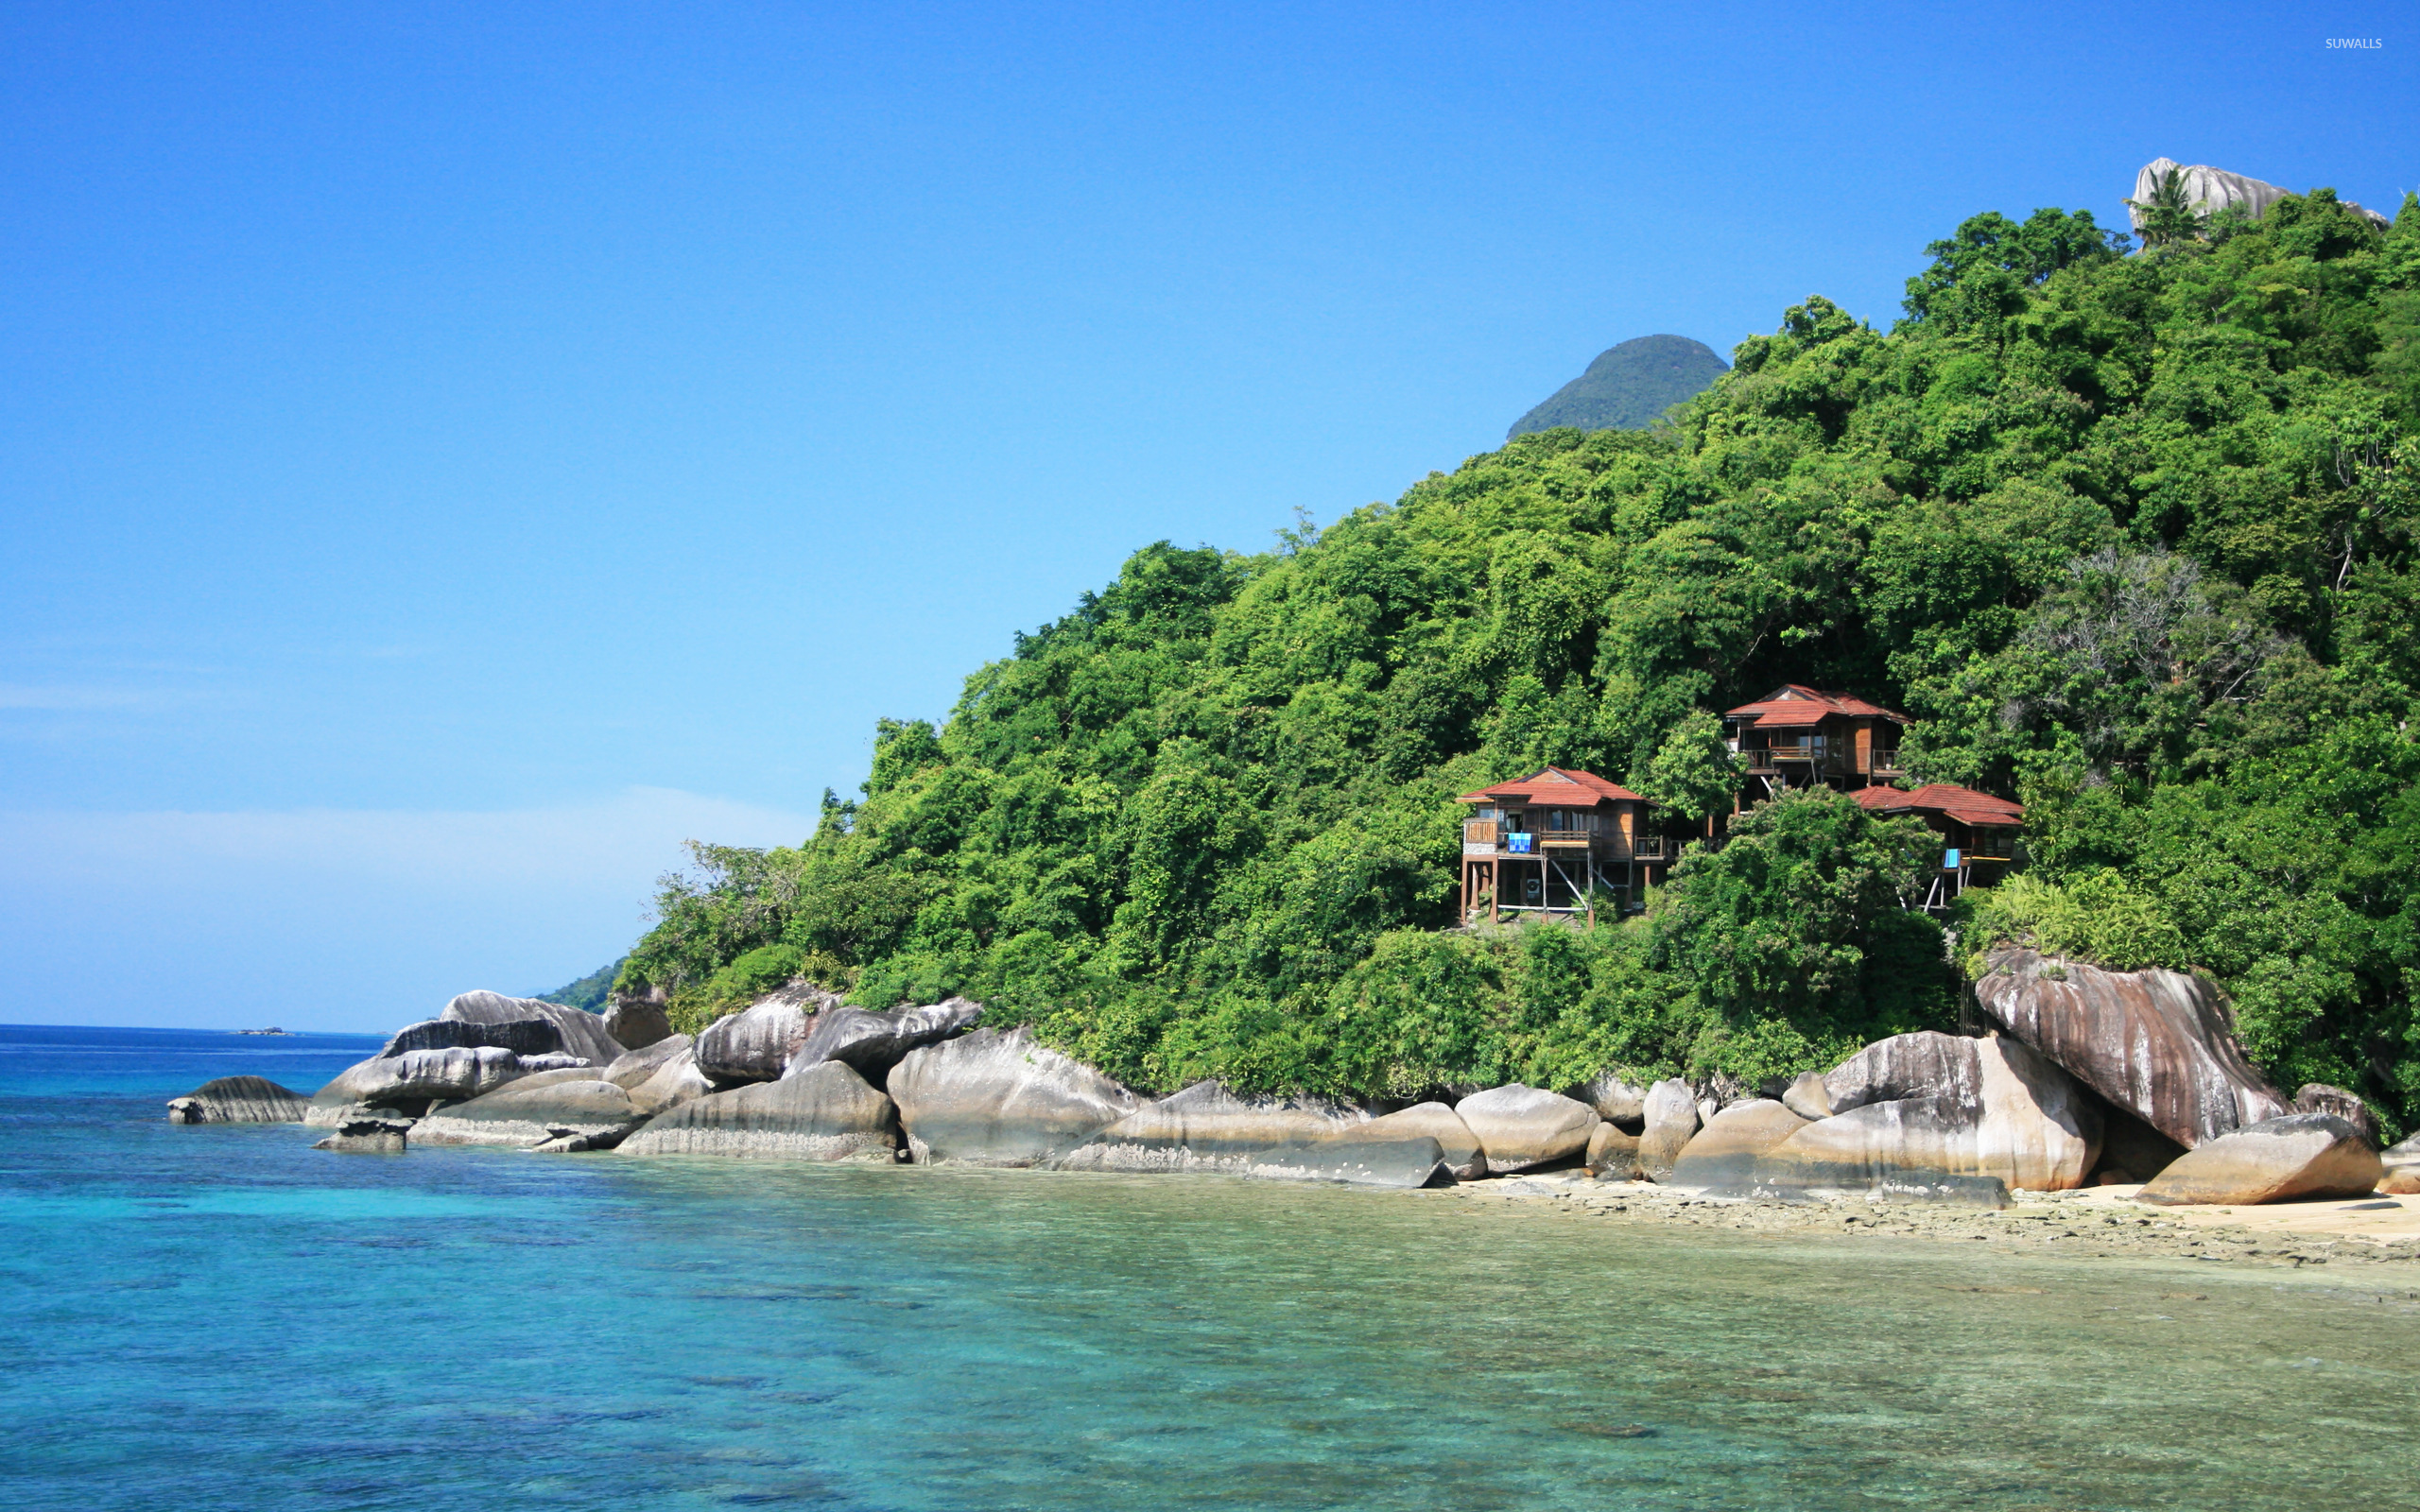 an introduction to the tioman island Pulau tioman is an island off the east coast of peninsular malaysia, acclaimed as a geological wonder, ecological paradise and one of southeast asia's most beautiful.